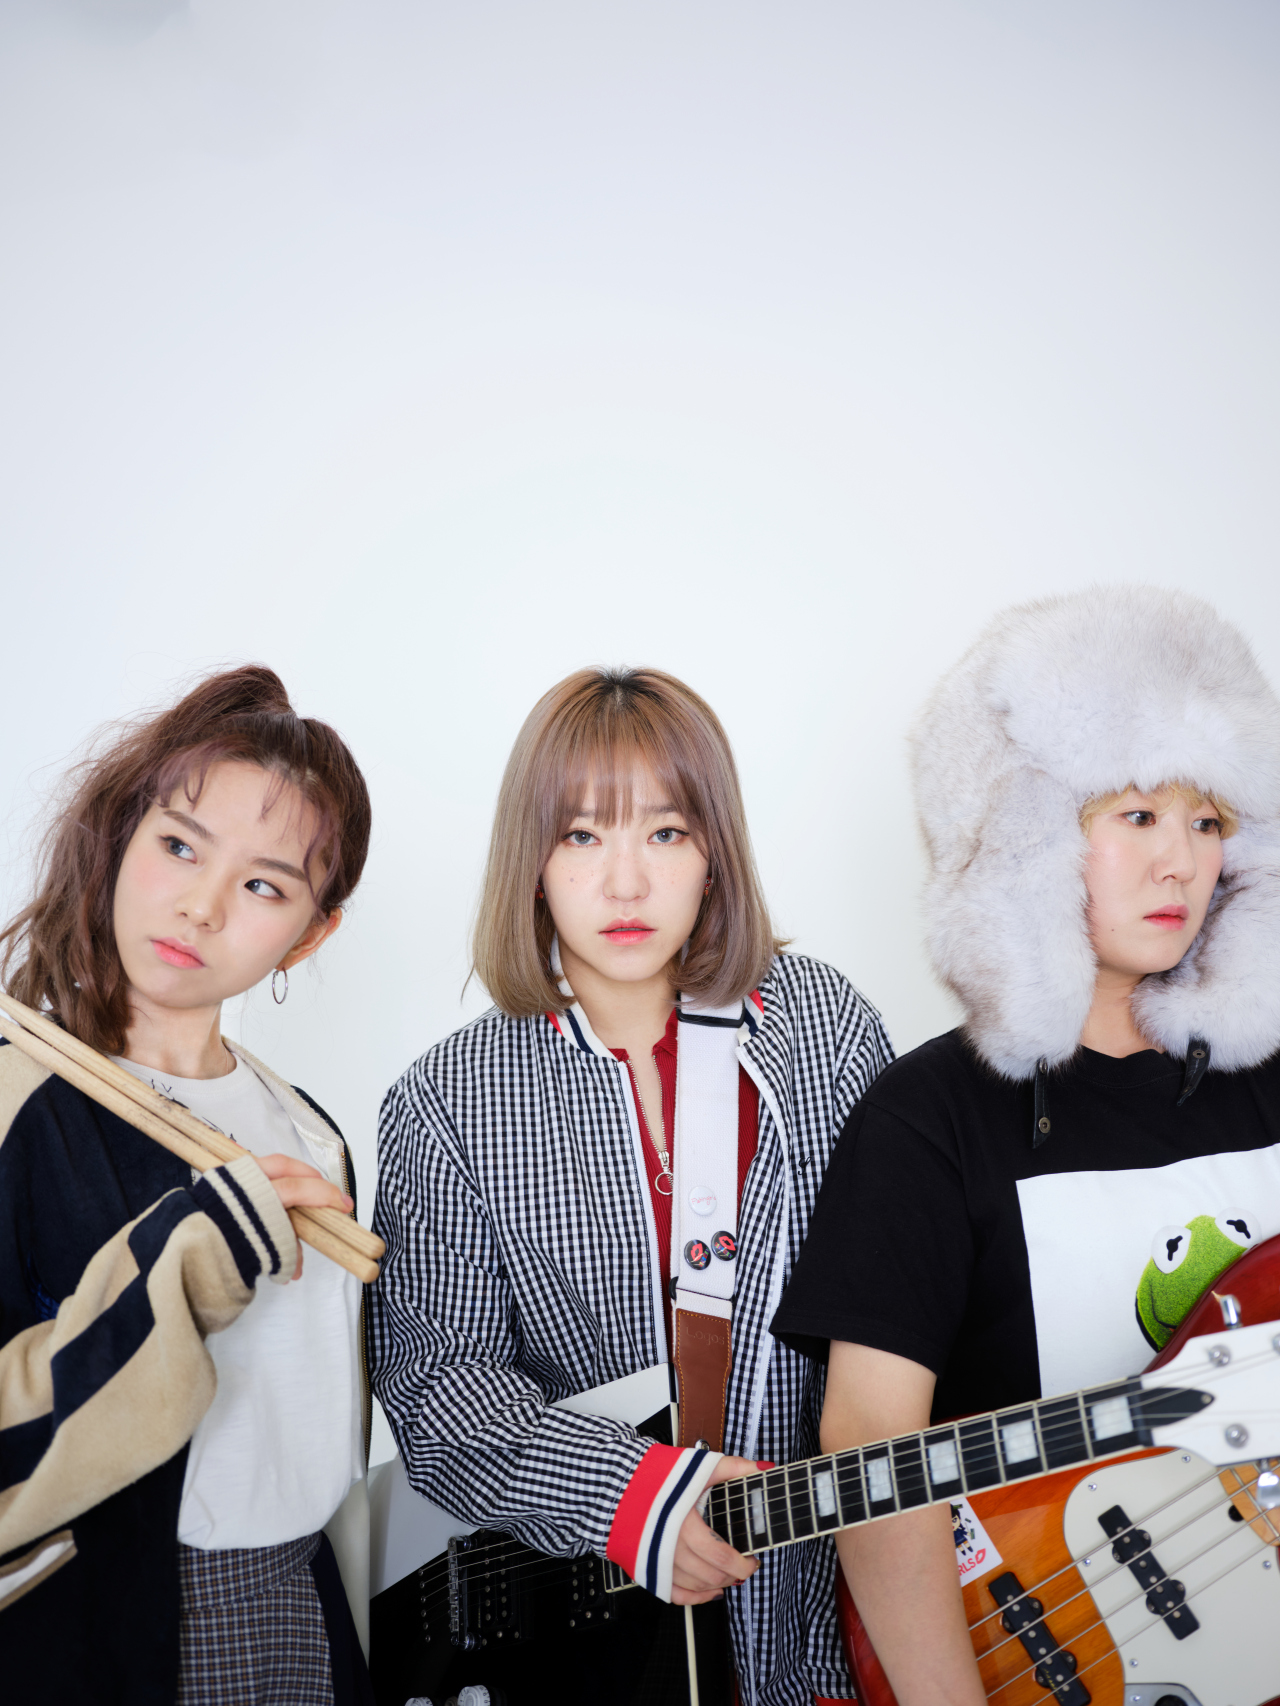 Fishingirls is an indie band facing financial losses. (Naturally Music)